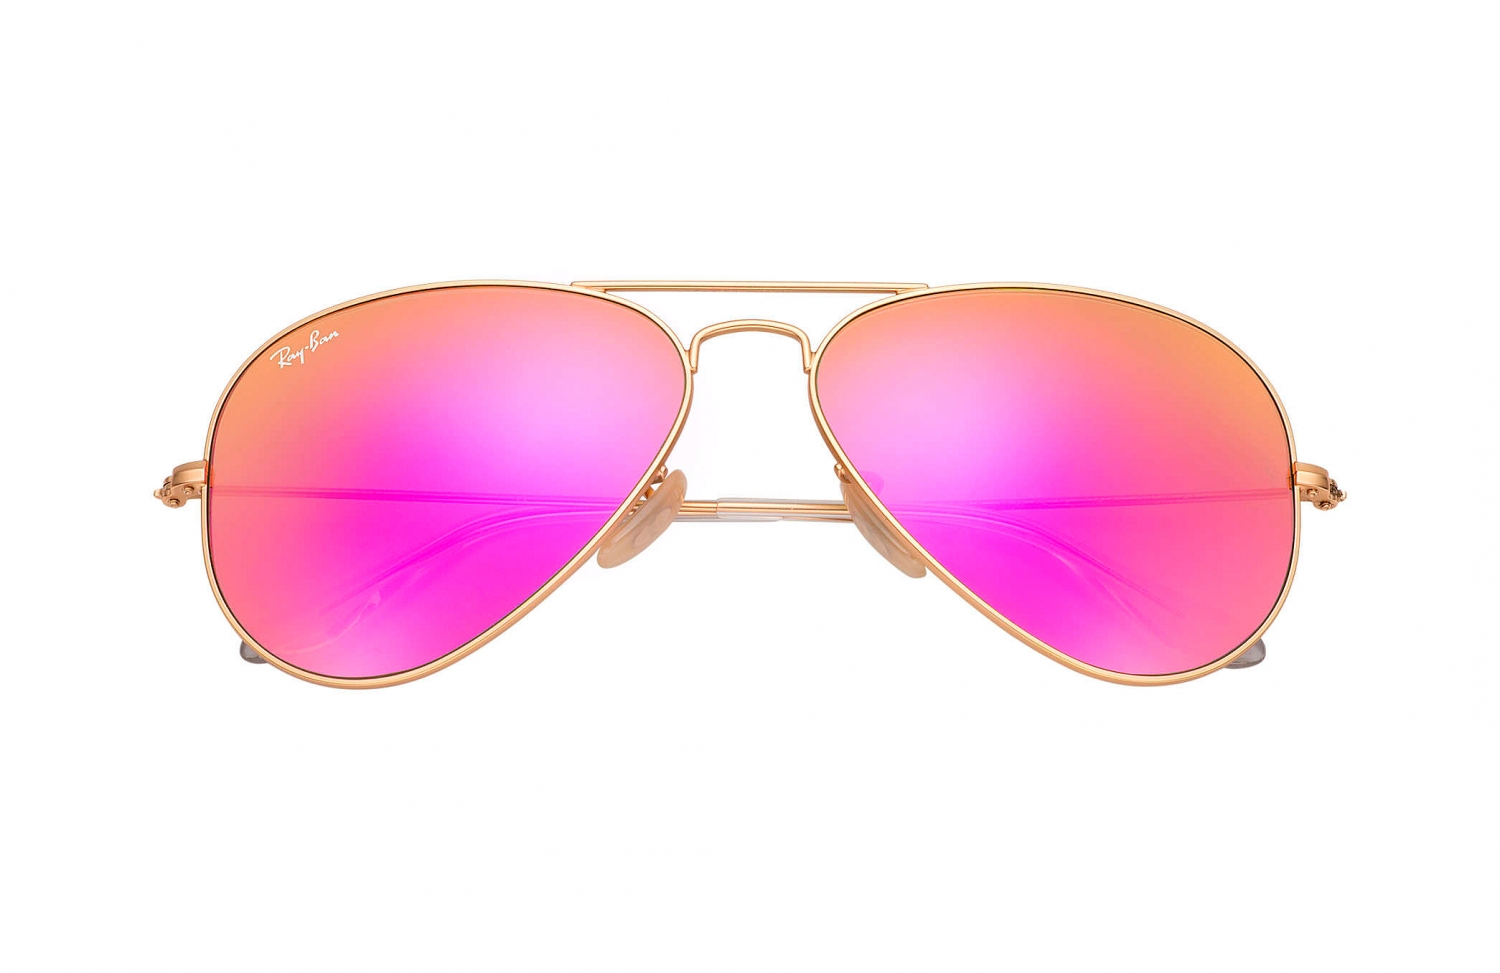 www ray ban com aviator  Ray Ban Sonnenbrille Aviator Flash Lenses Gold Zyklam bei SAILERstyle